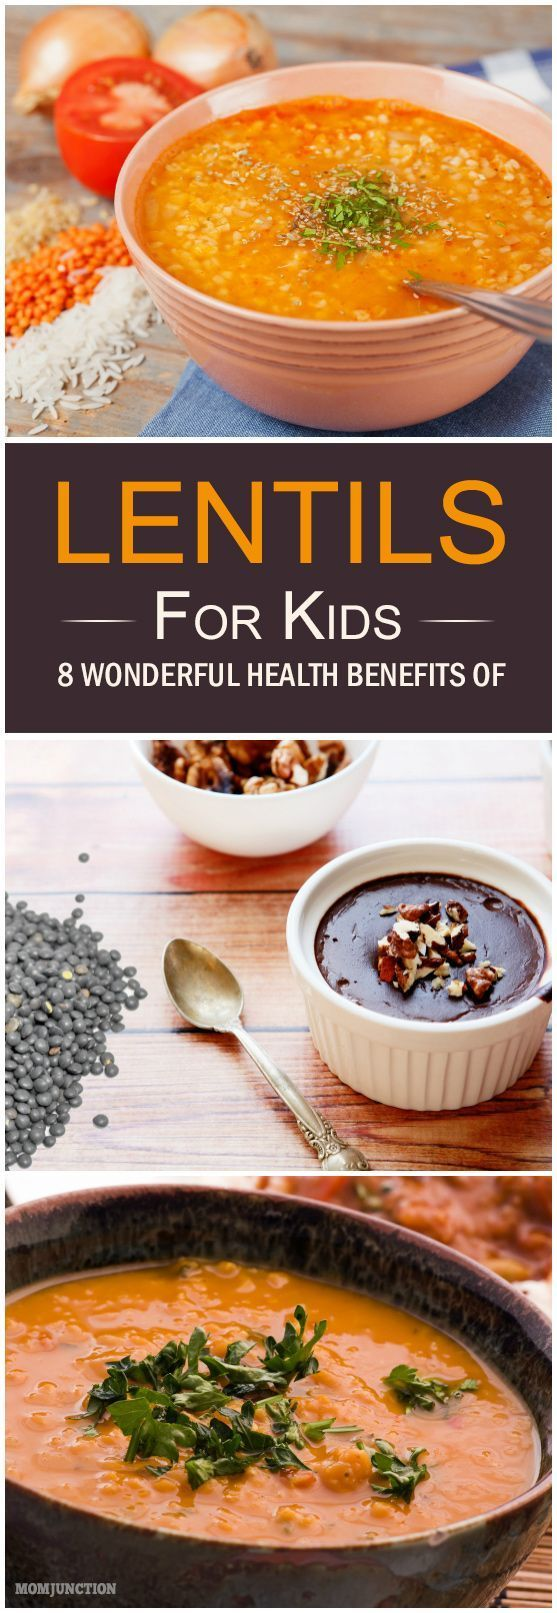 Do you spend hours consulting books and web pages to advance your knowledge about child nutrition? We list out 3 wonderful lentil recipes for kids that you should try out.